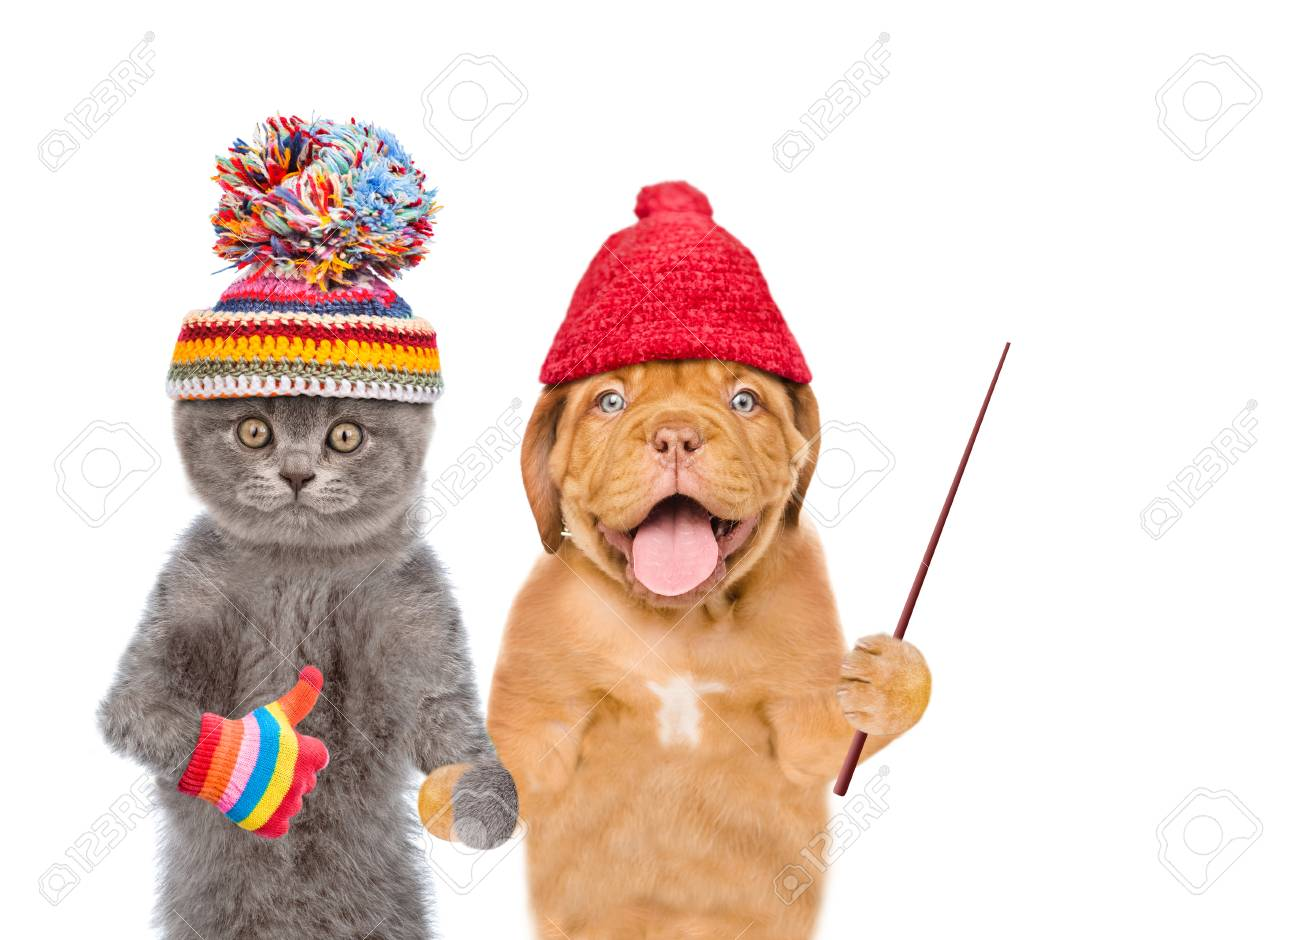 7d3e067930283 Funny kitten and puppy in winter hats holds pointing stick. isolated on  white background.